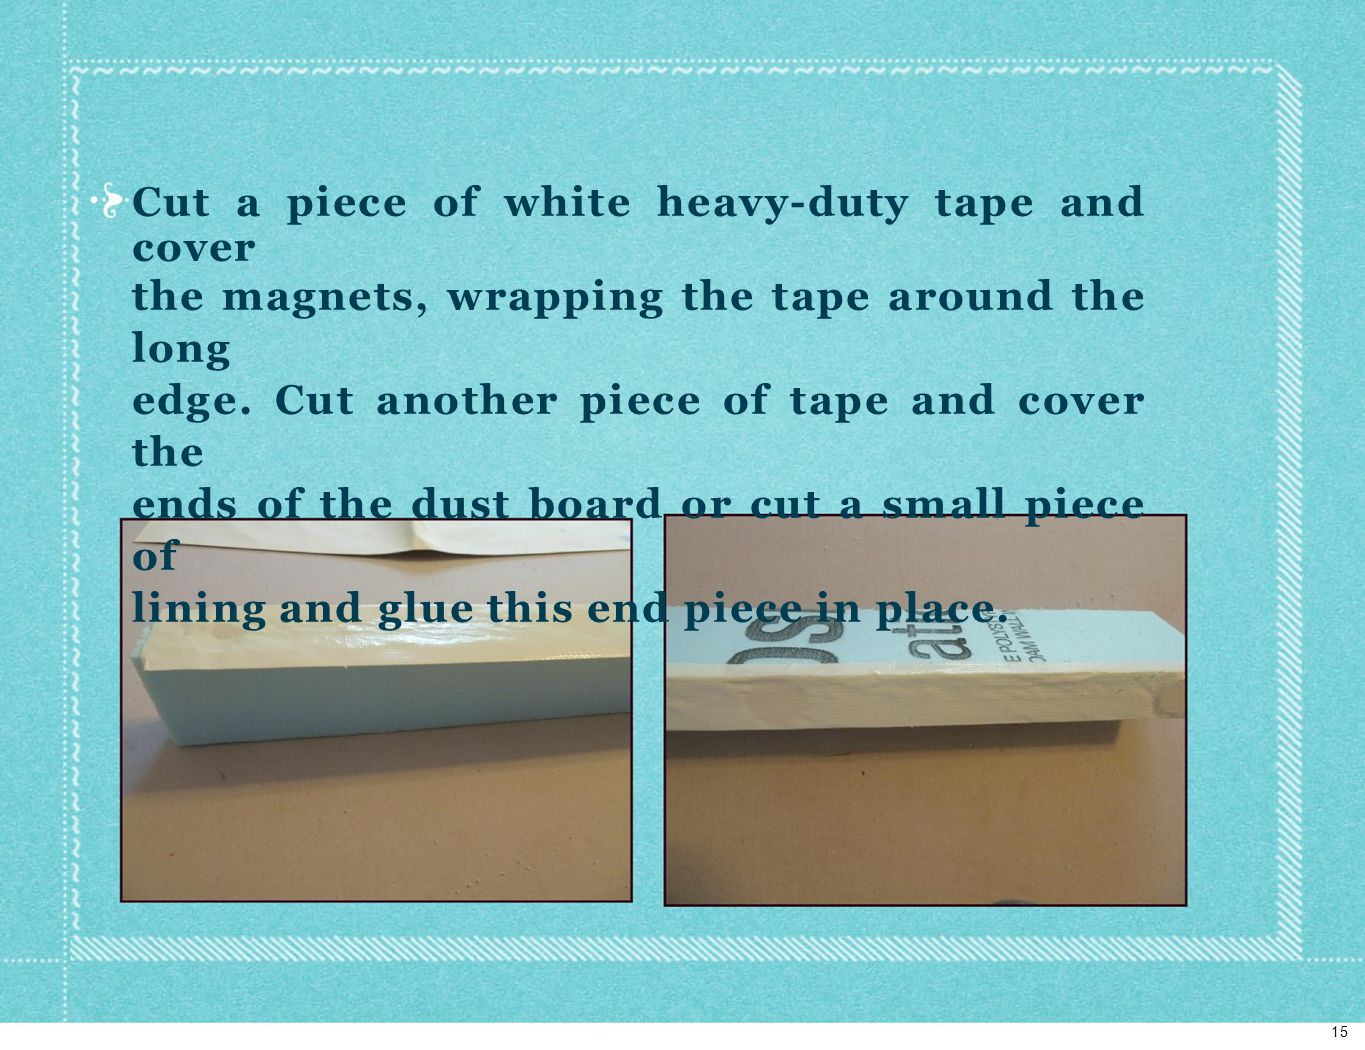 Cut a piece of white heavy-duty tape and cover the magnets, wrapping the tape around the long edge.